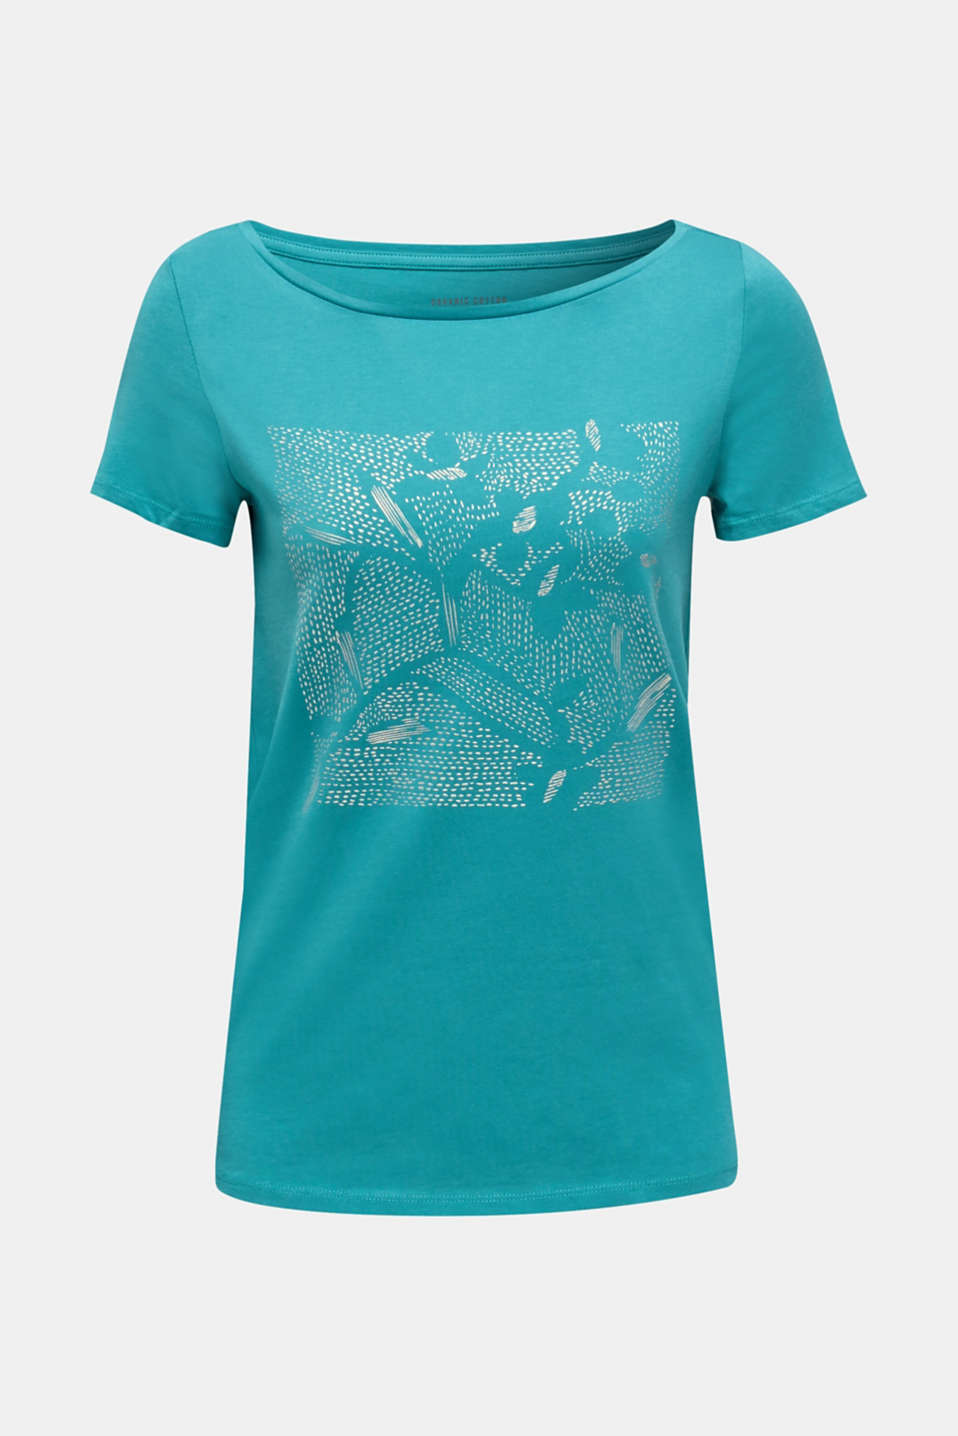 Top with a glitter print, 100% organic cotton, TEAL GREEN, detail image number 6